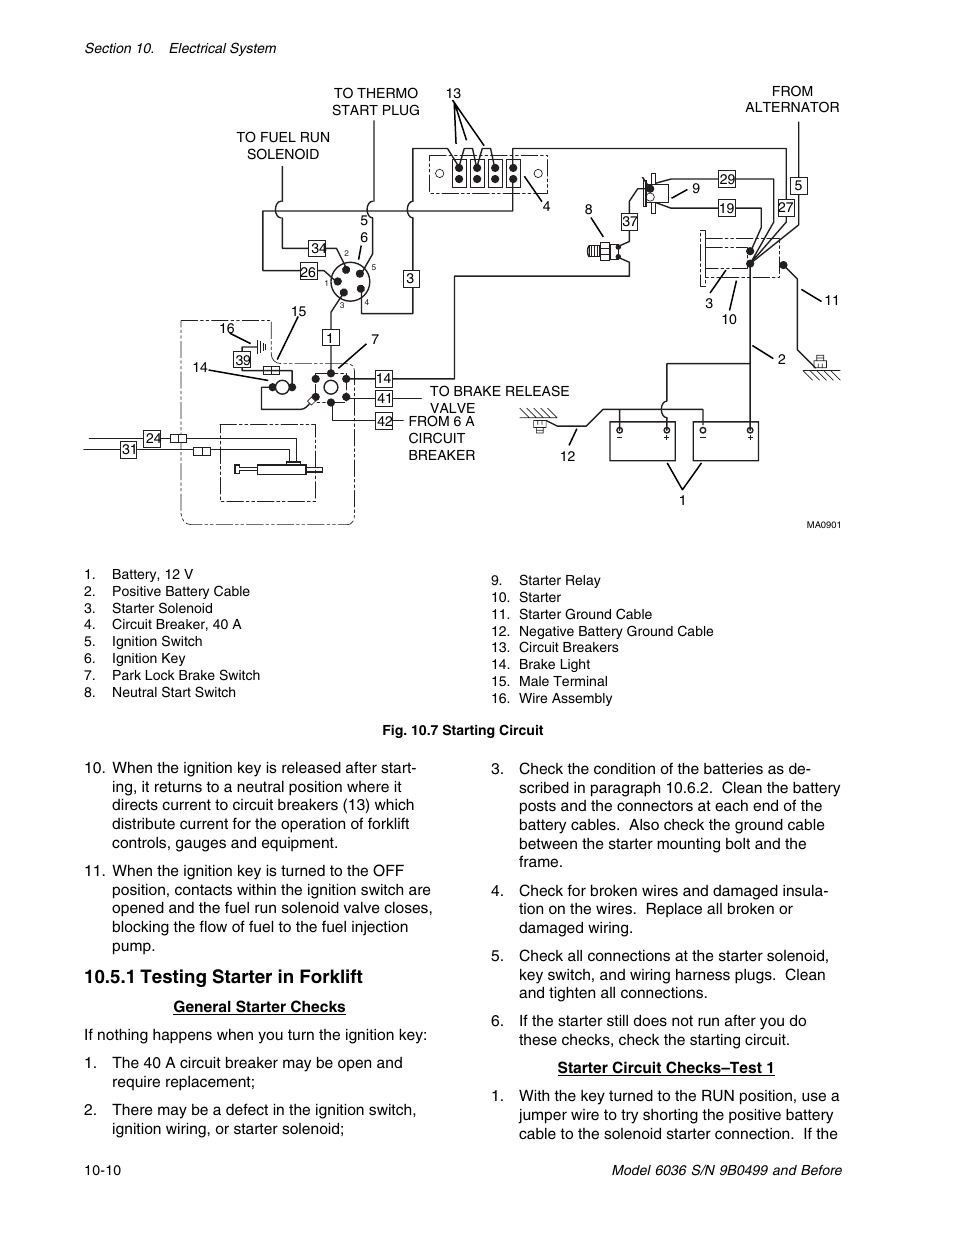 medium resolution of 1 testing starter in forklift skytrak 6036 service manual user manual page 204 280